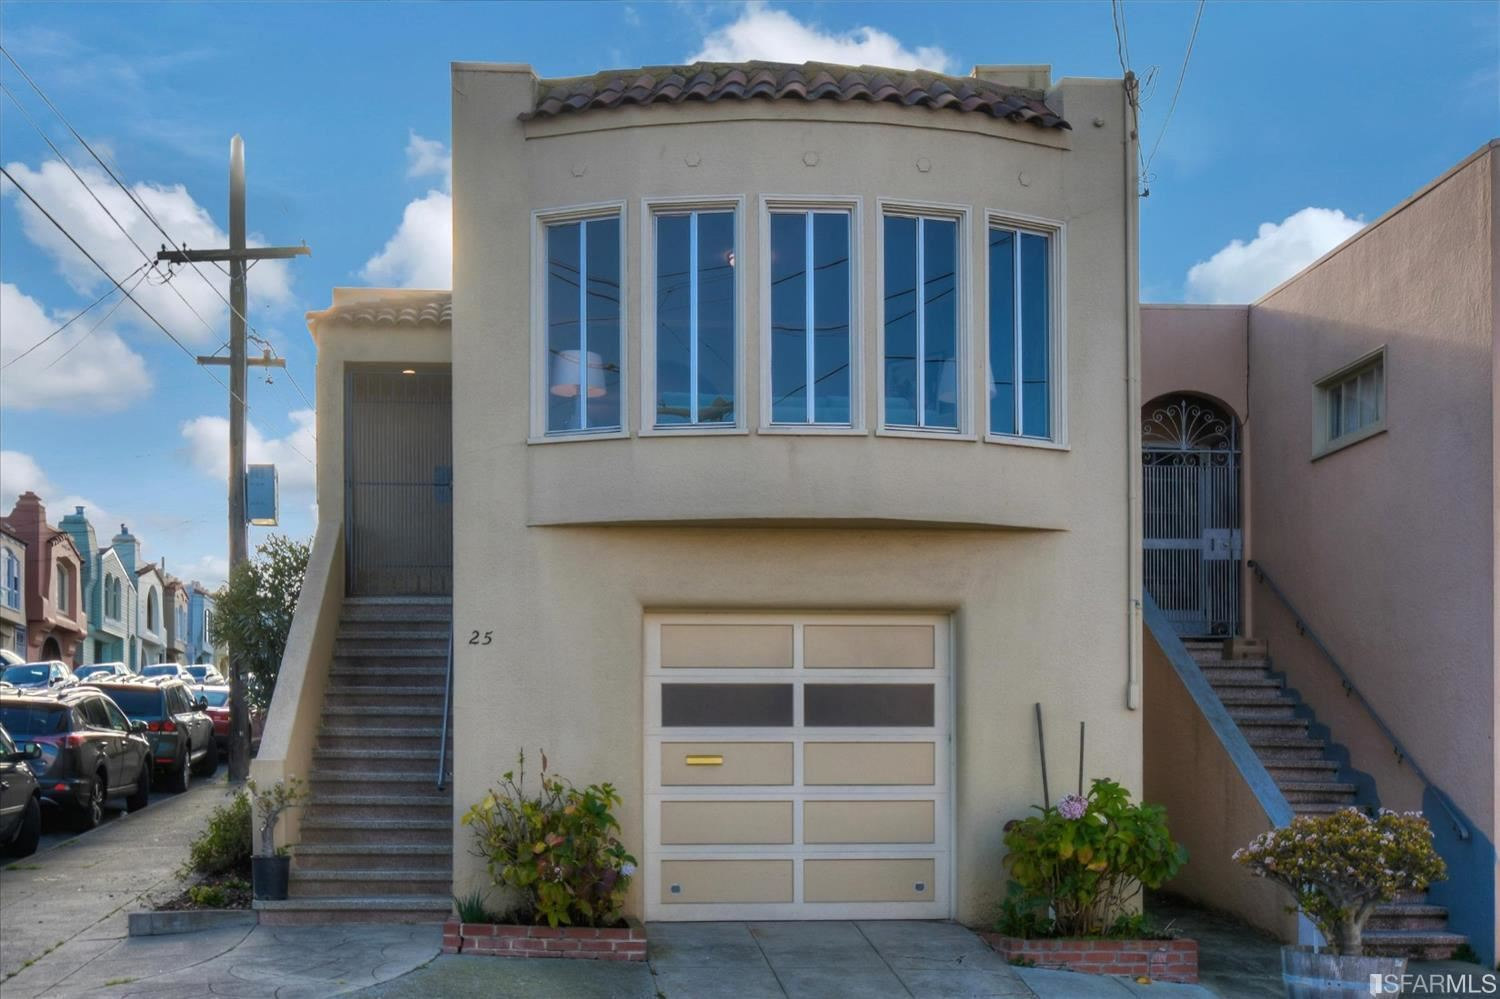 Property Image Of 25 Ottawa Avenue In San Francisco, Ca